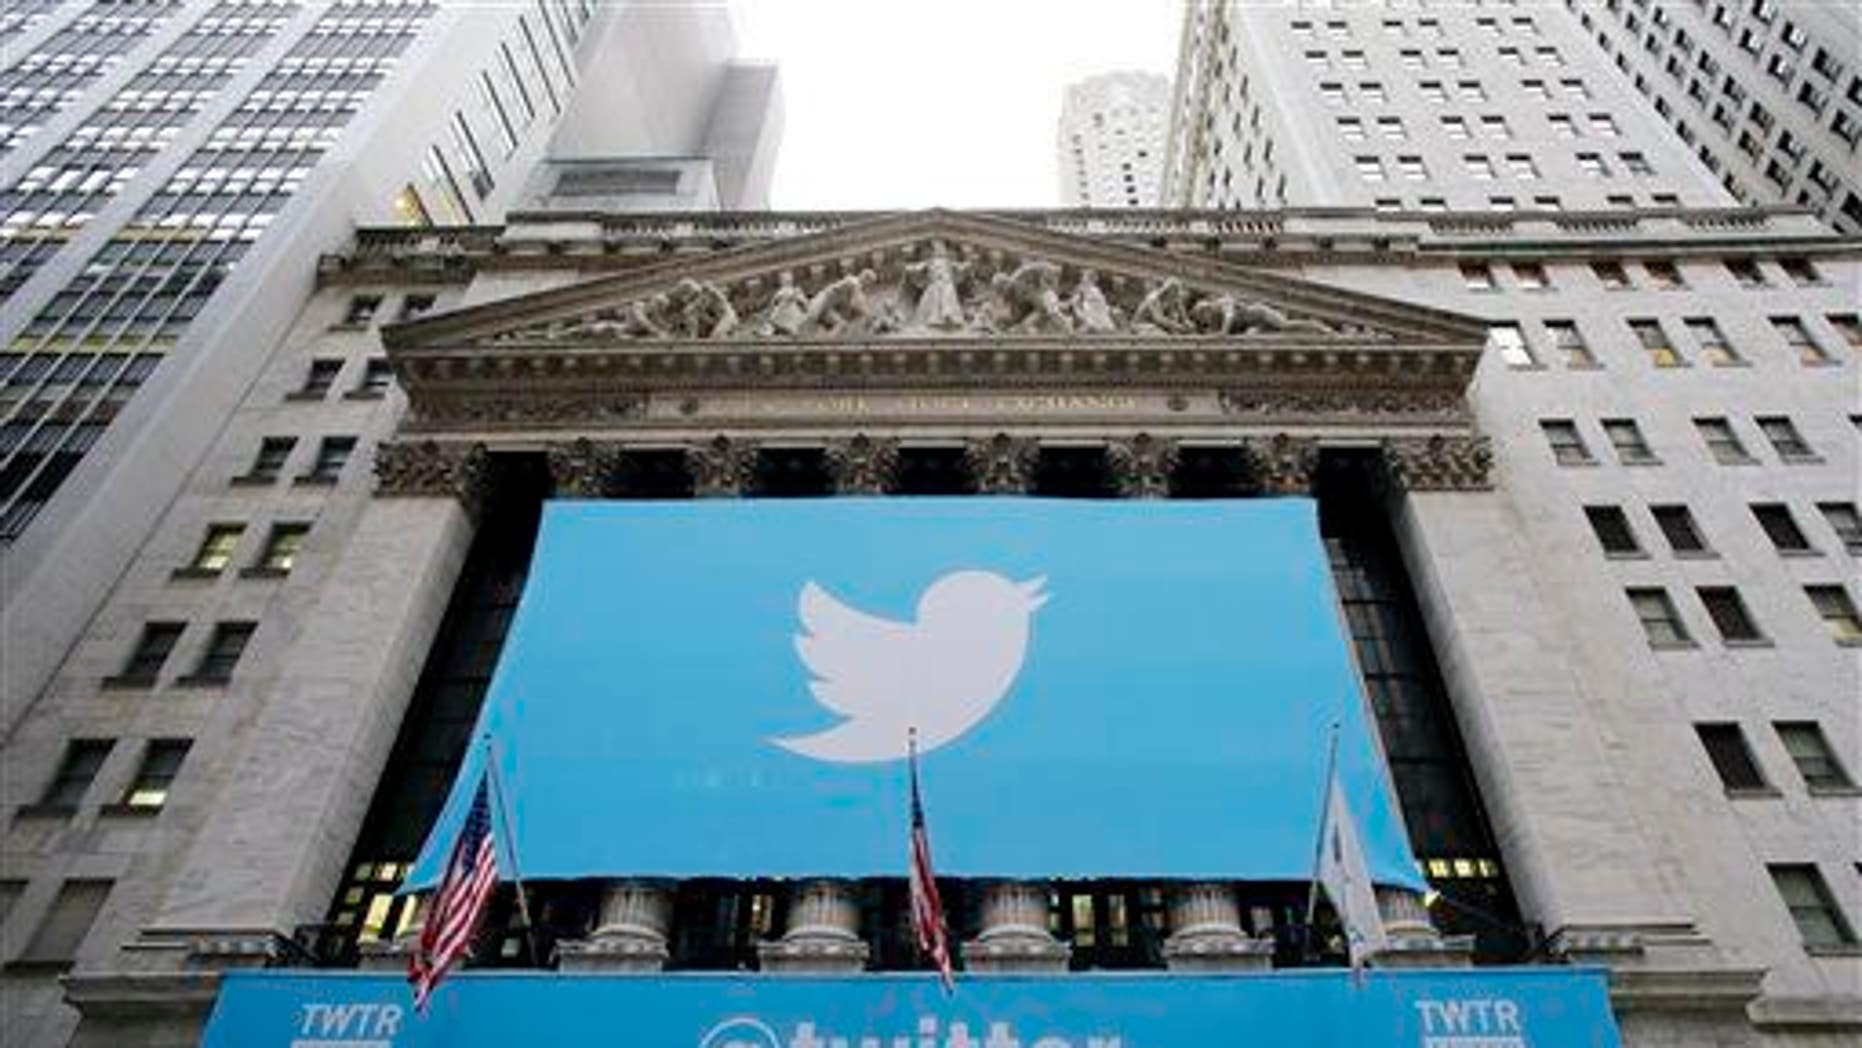 In this Thursday, Nov. 7, 2013 file photo, a banner with the Twitter logo hangs on the facade of the New York Stock Exchange.